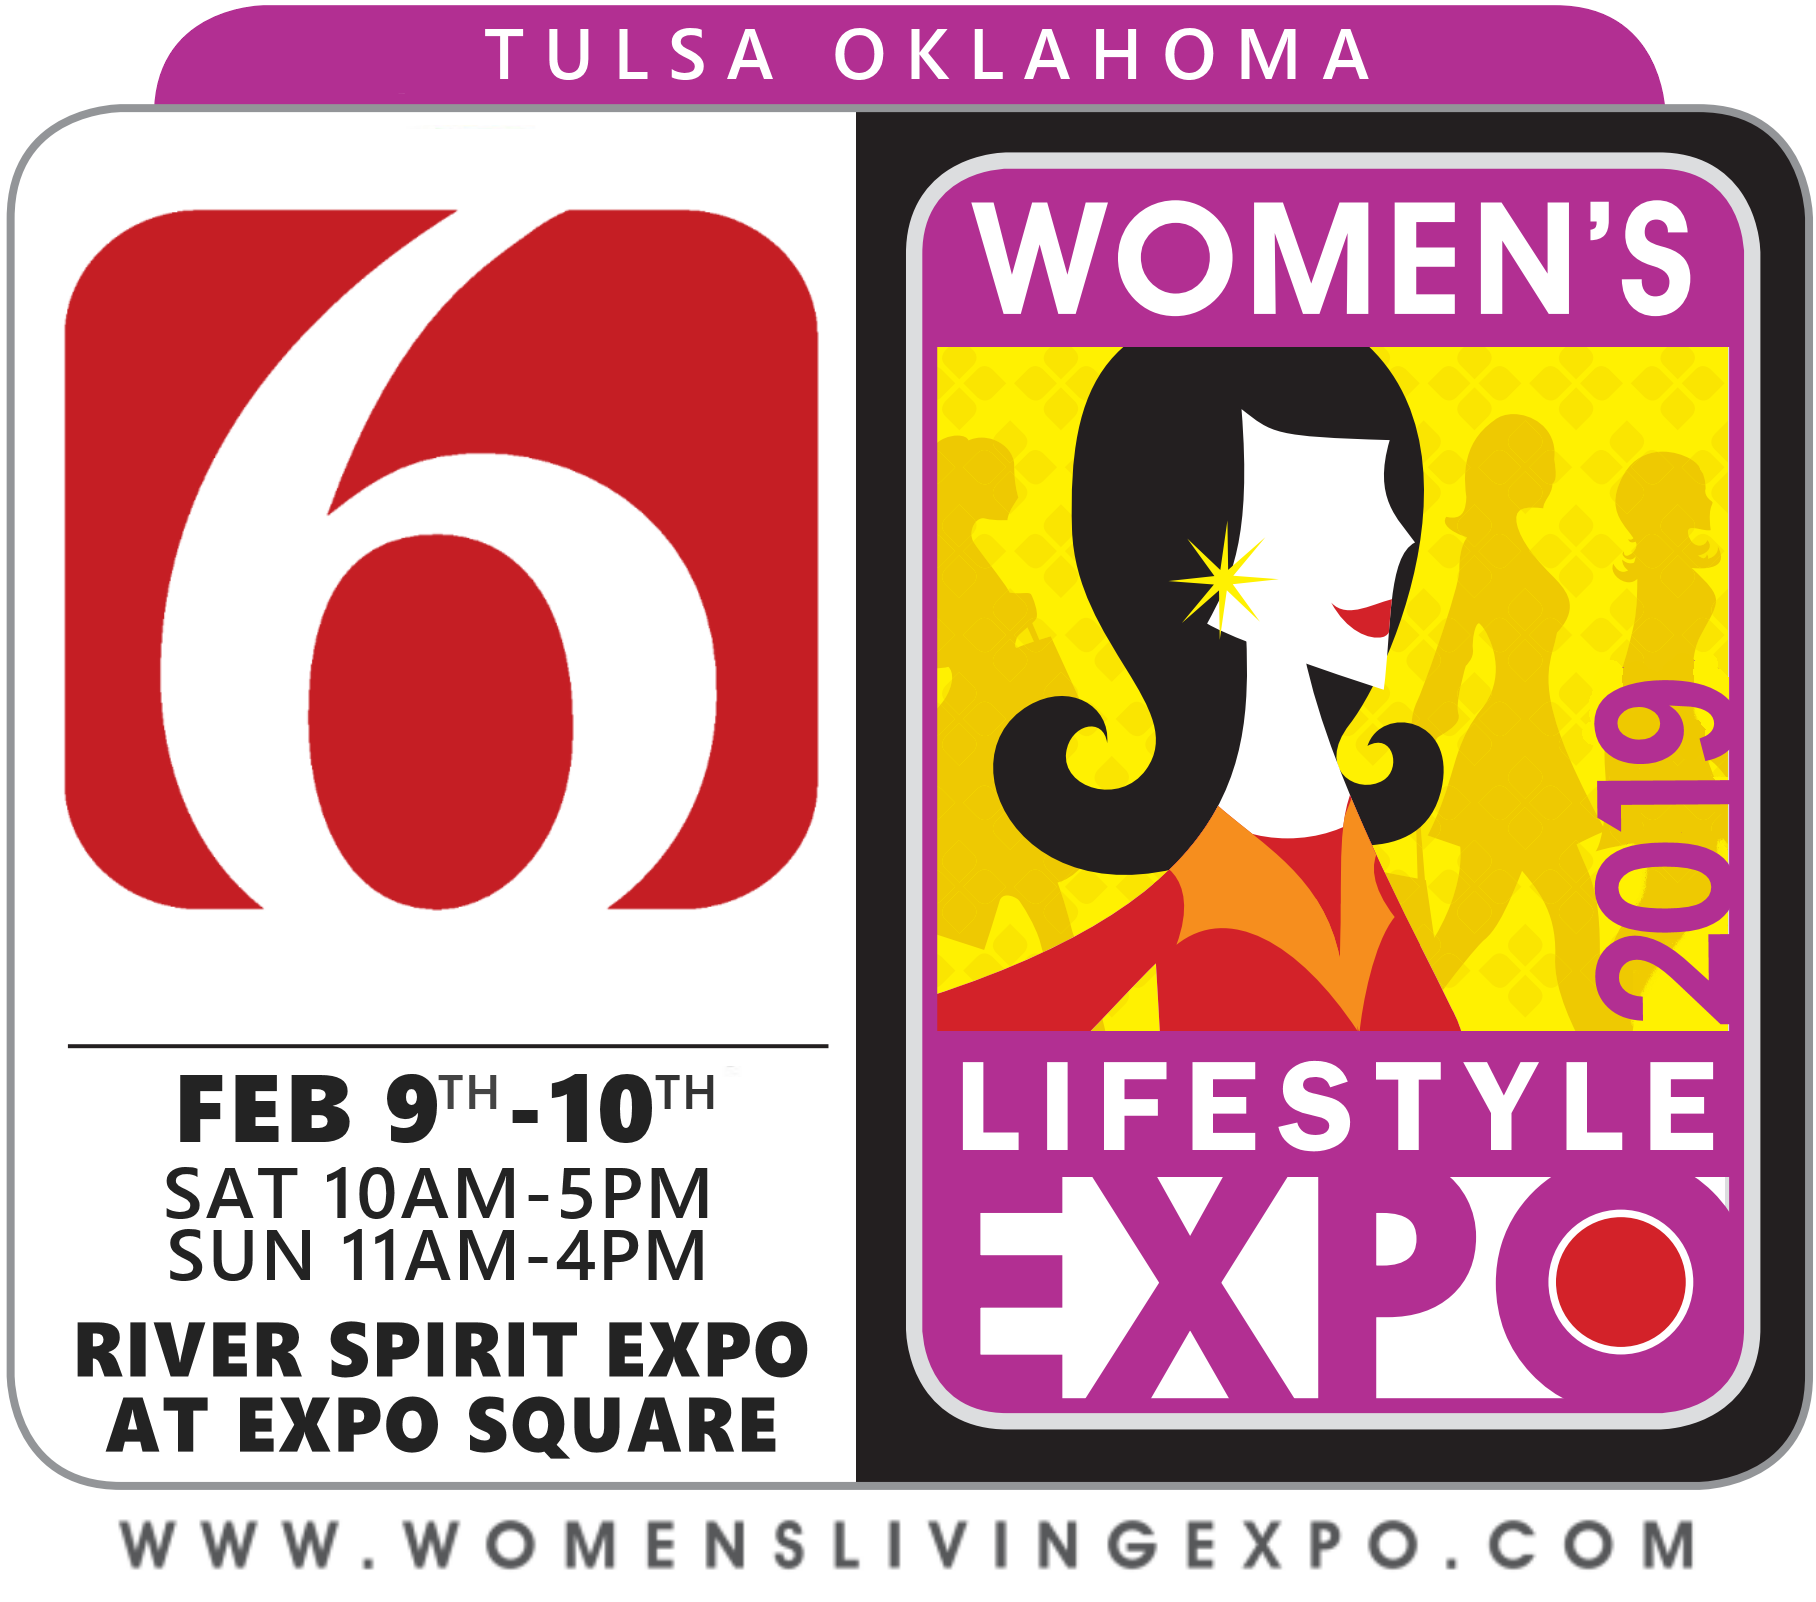 Logo for the Tulsa Women's Lifestyle Expo